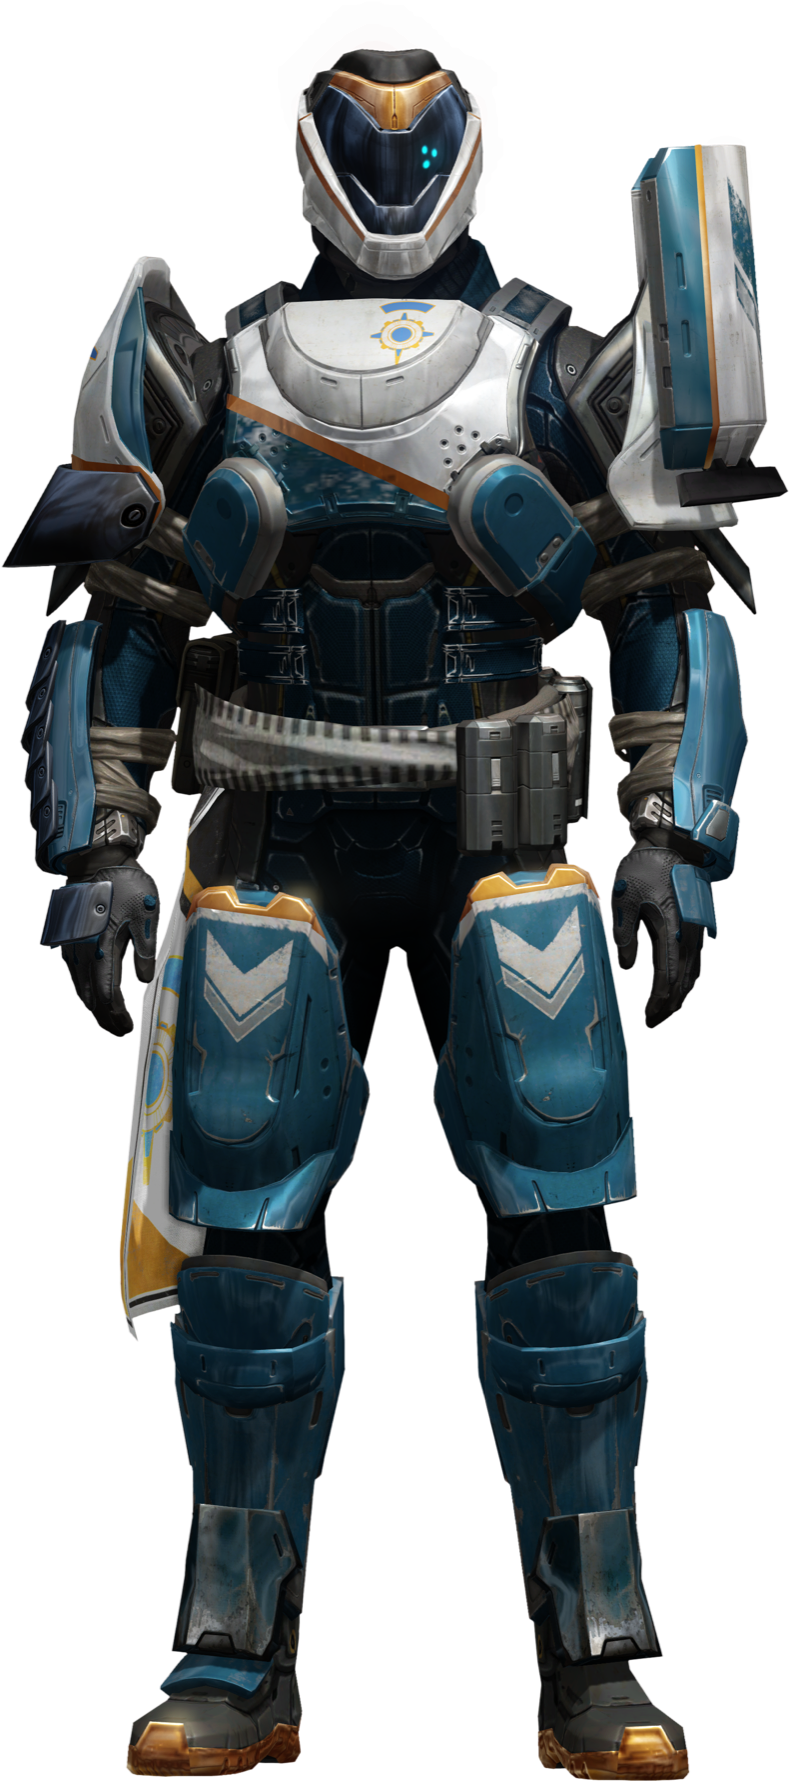 Titan destiny png. Download here s the